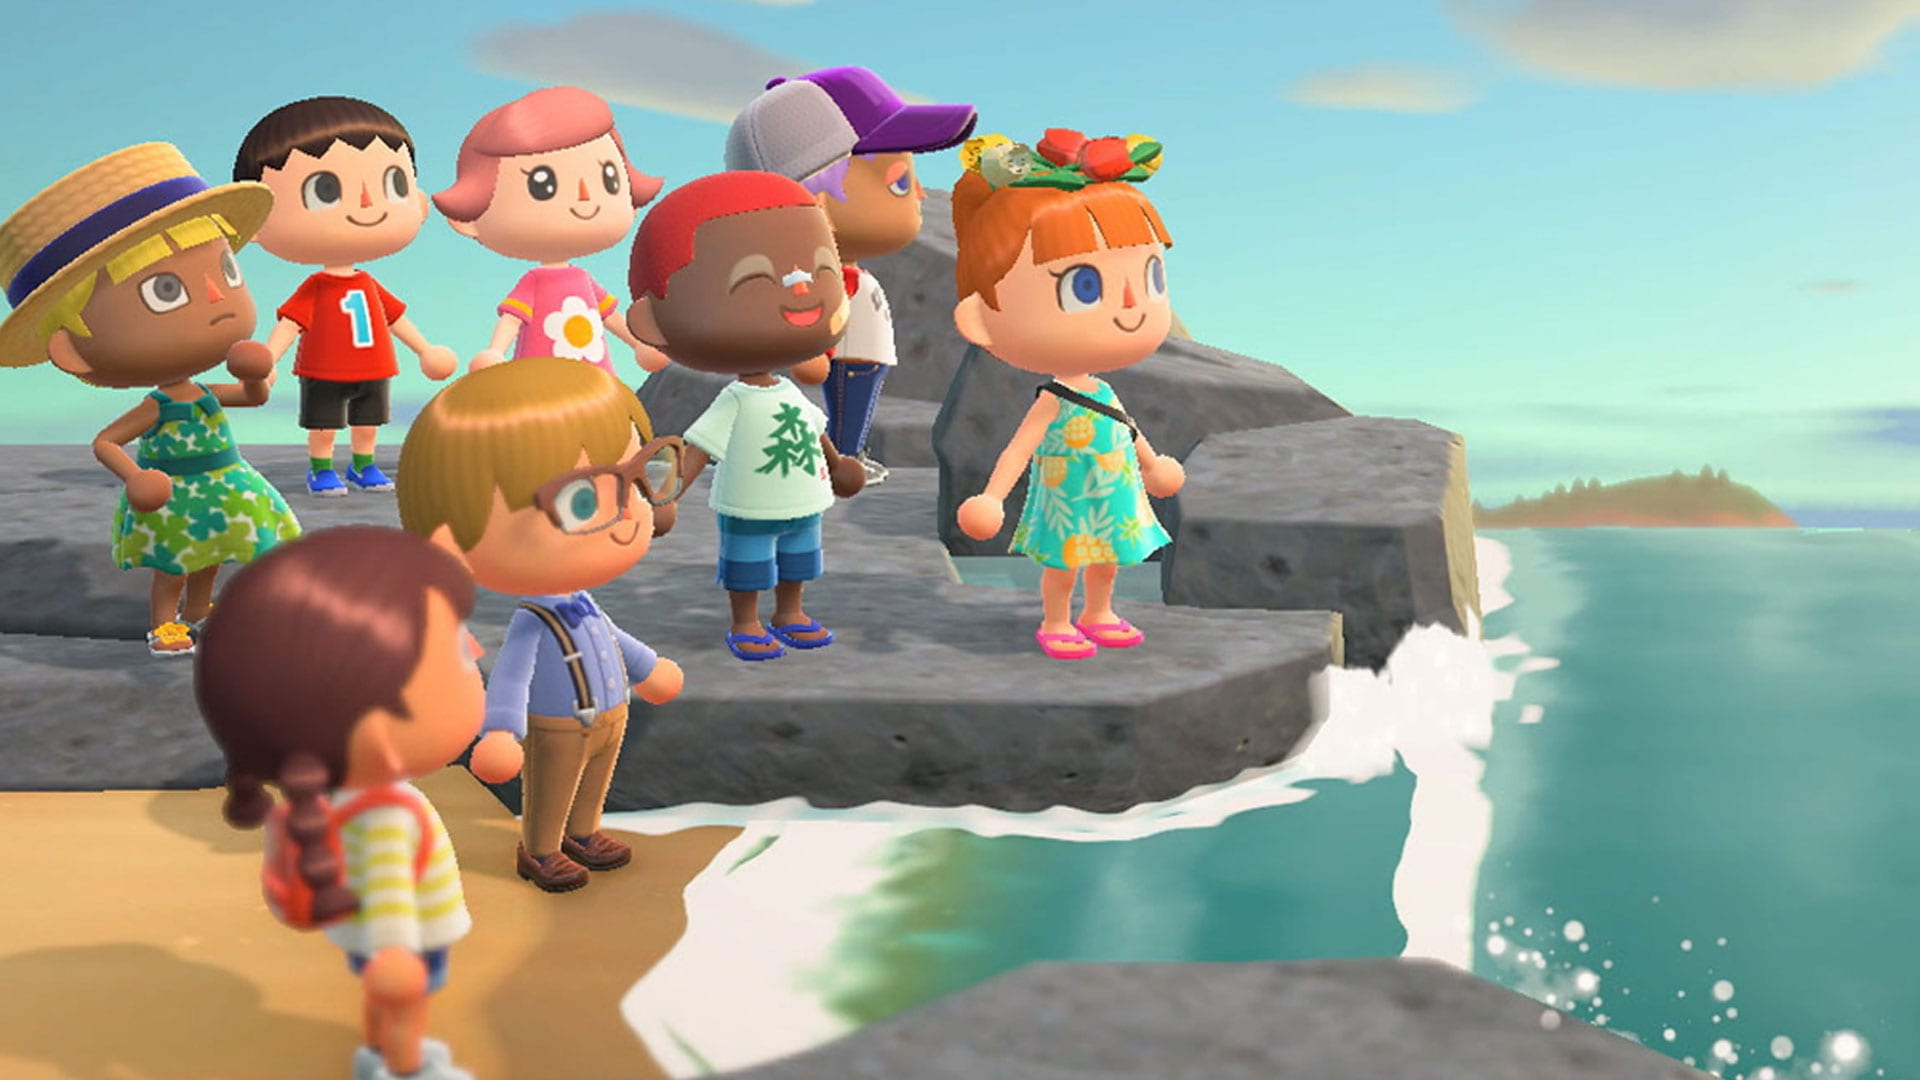 How to Get Rusted Parts, animal crossing, new horizons